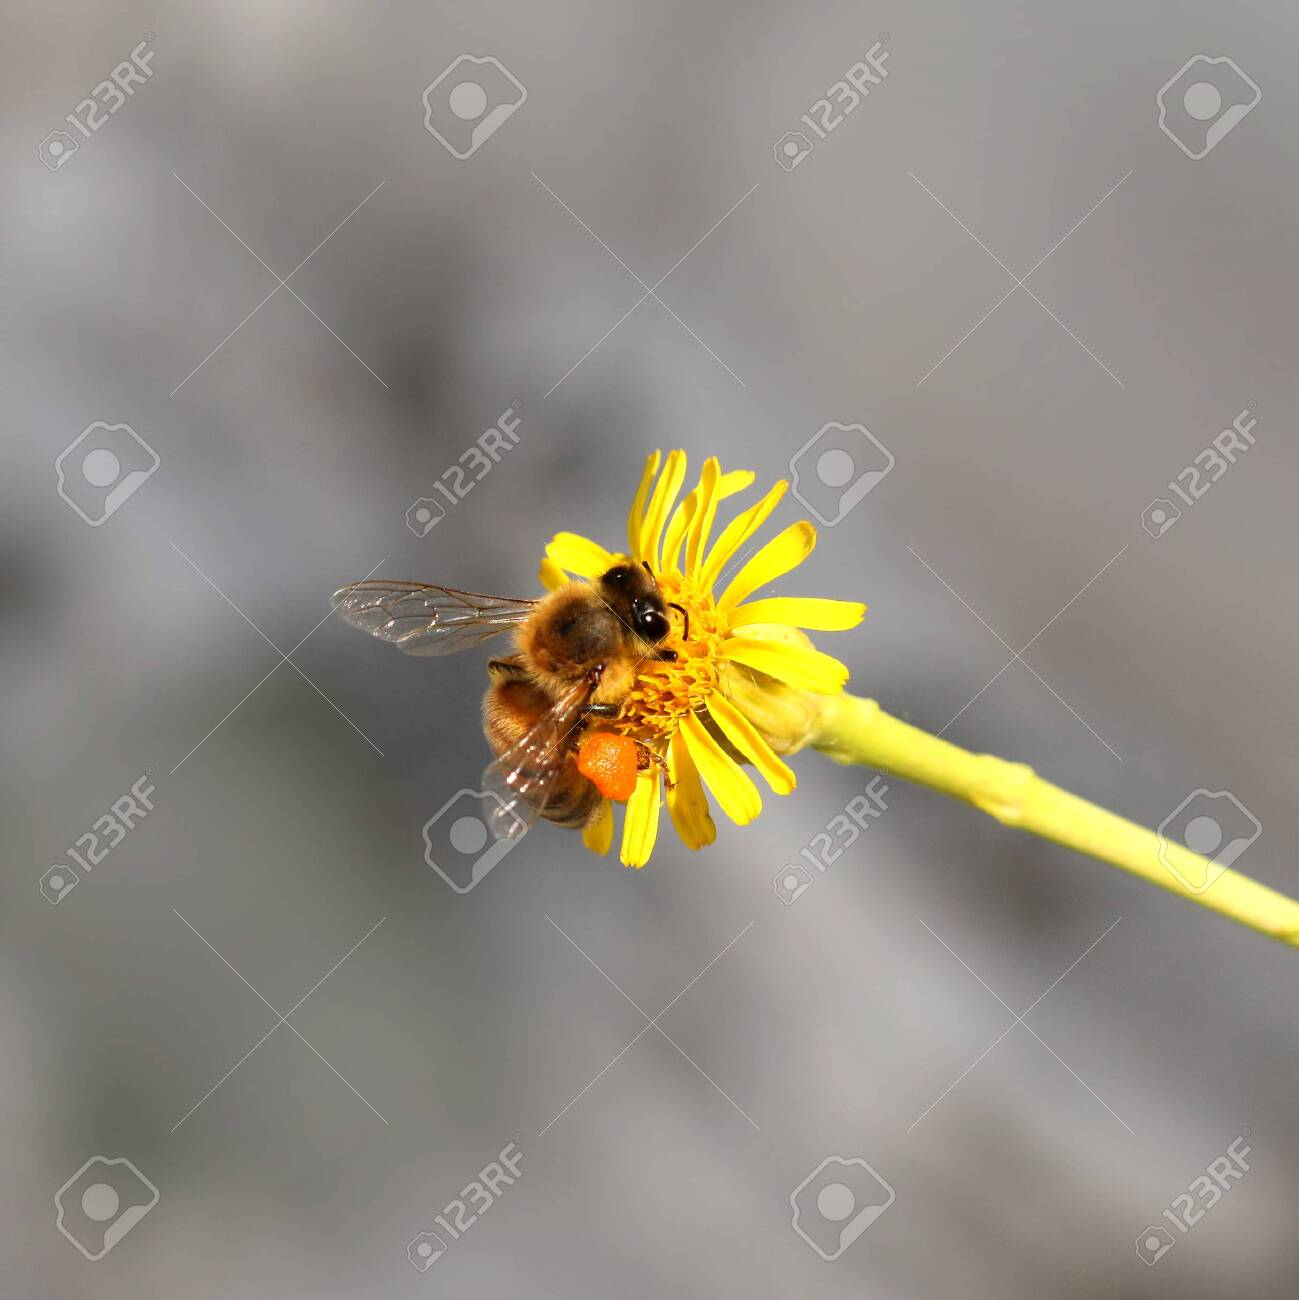 bee on the flower - 138635793